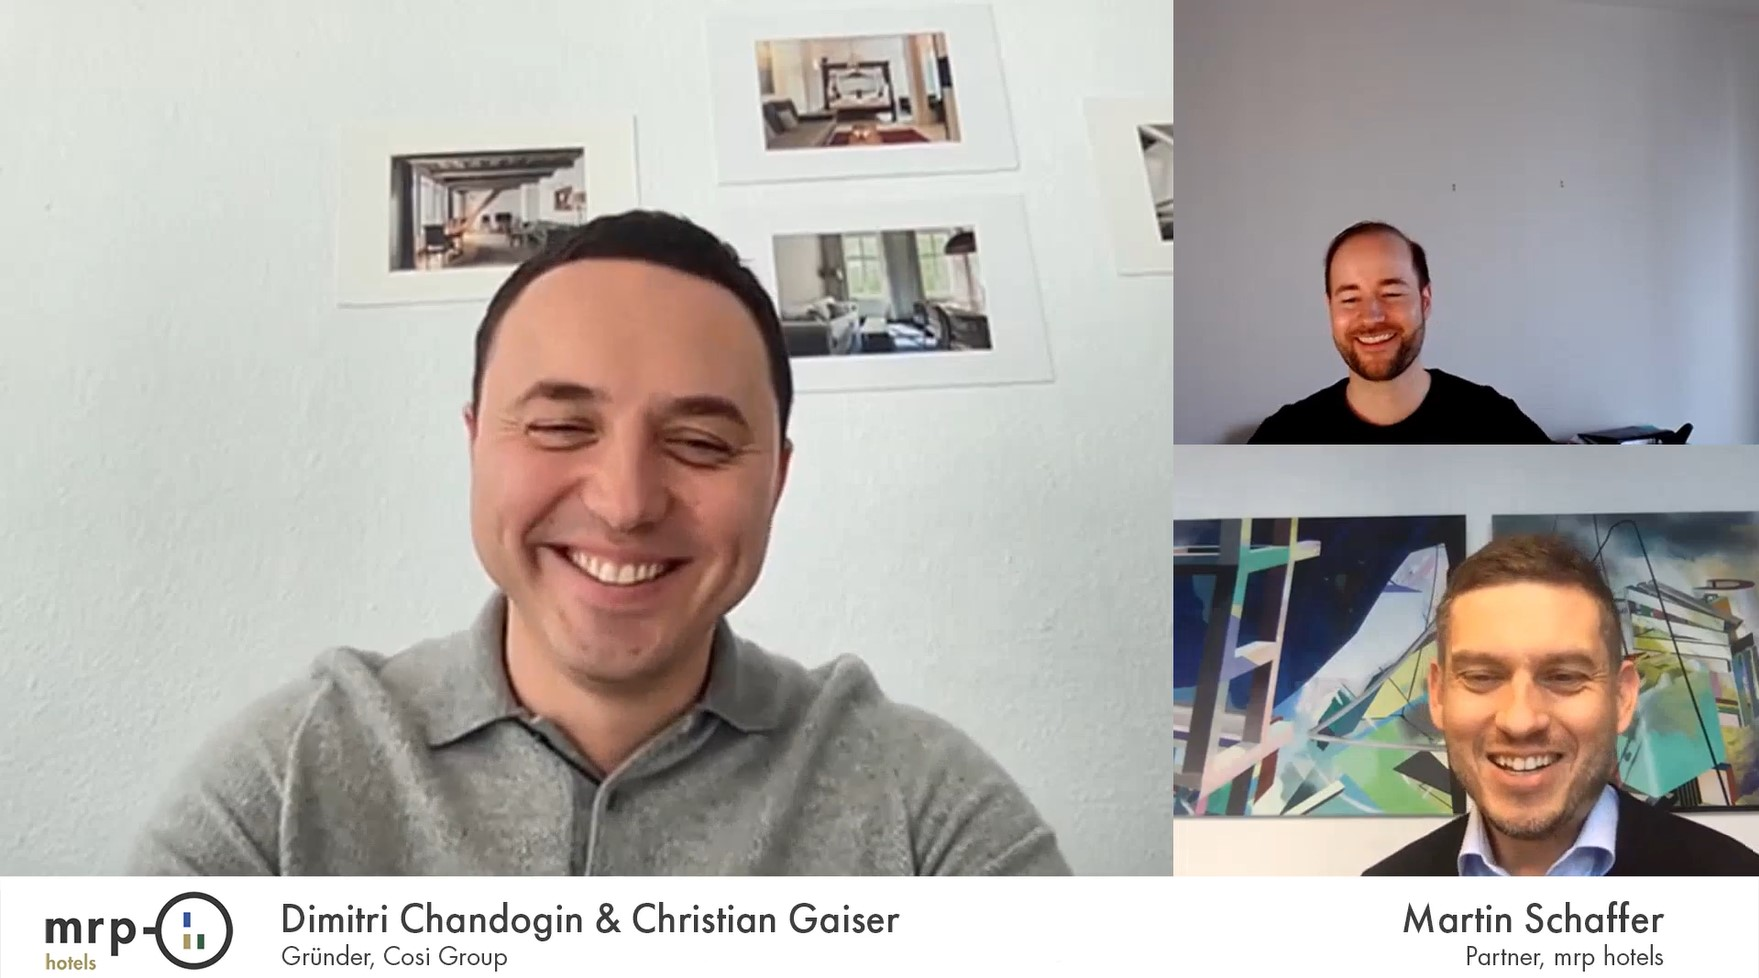 mrp hotels Videocast mit Dimitri Chandogin und Christian Gaiser – Cosi Group